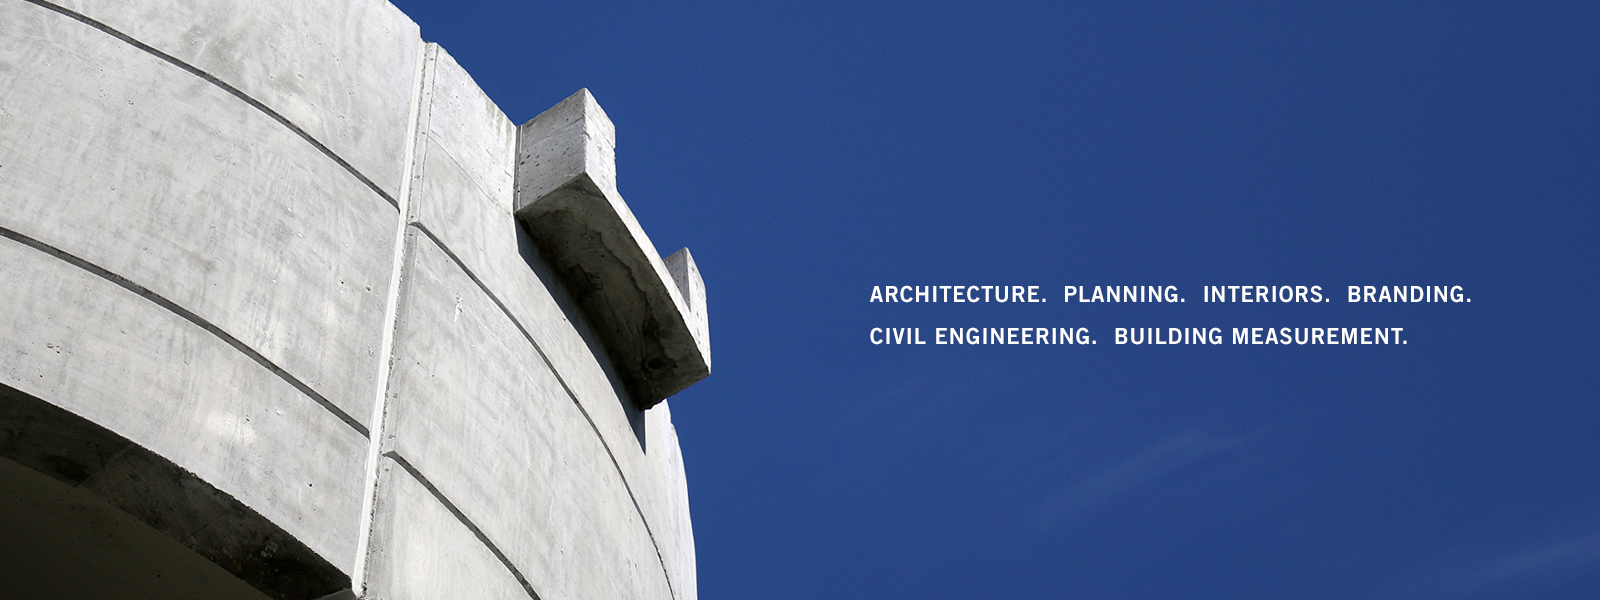 Architecture. Planning. Interiors. Branding. Civil Engineering. Building Measurement.